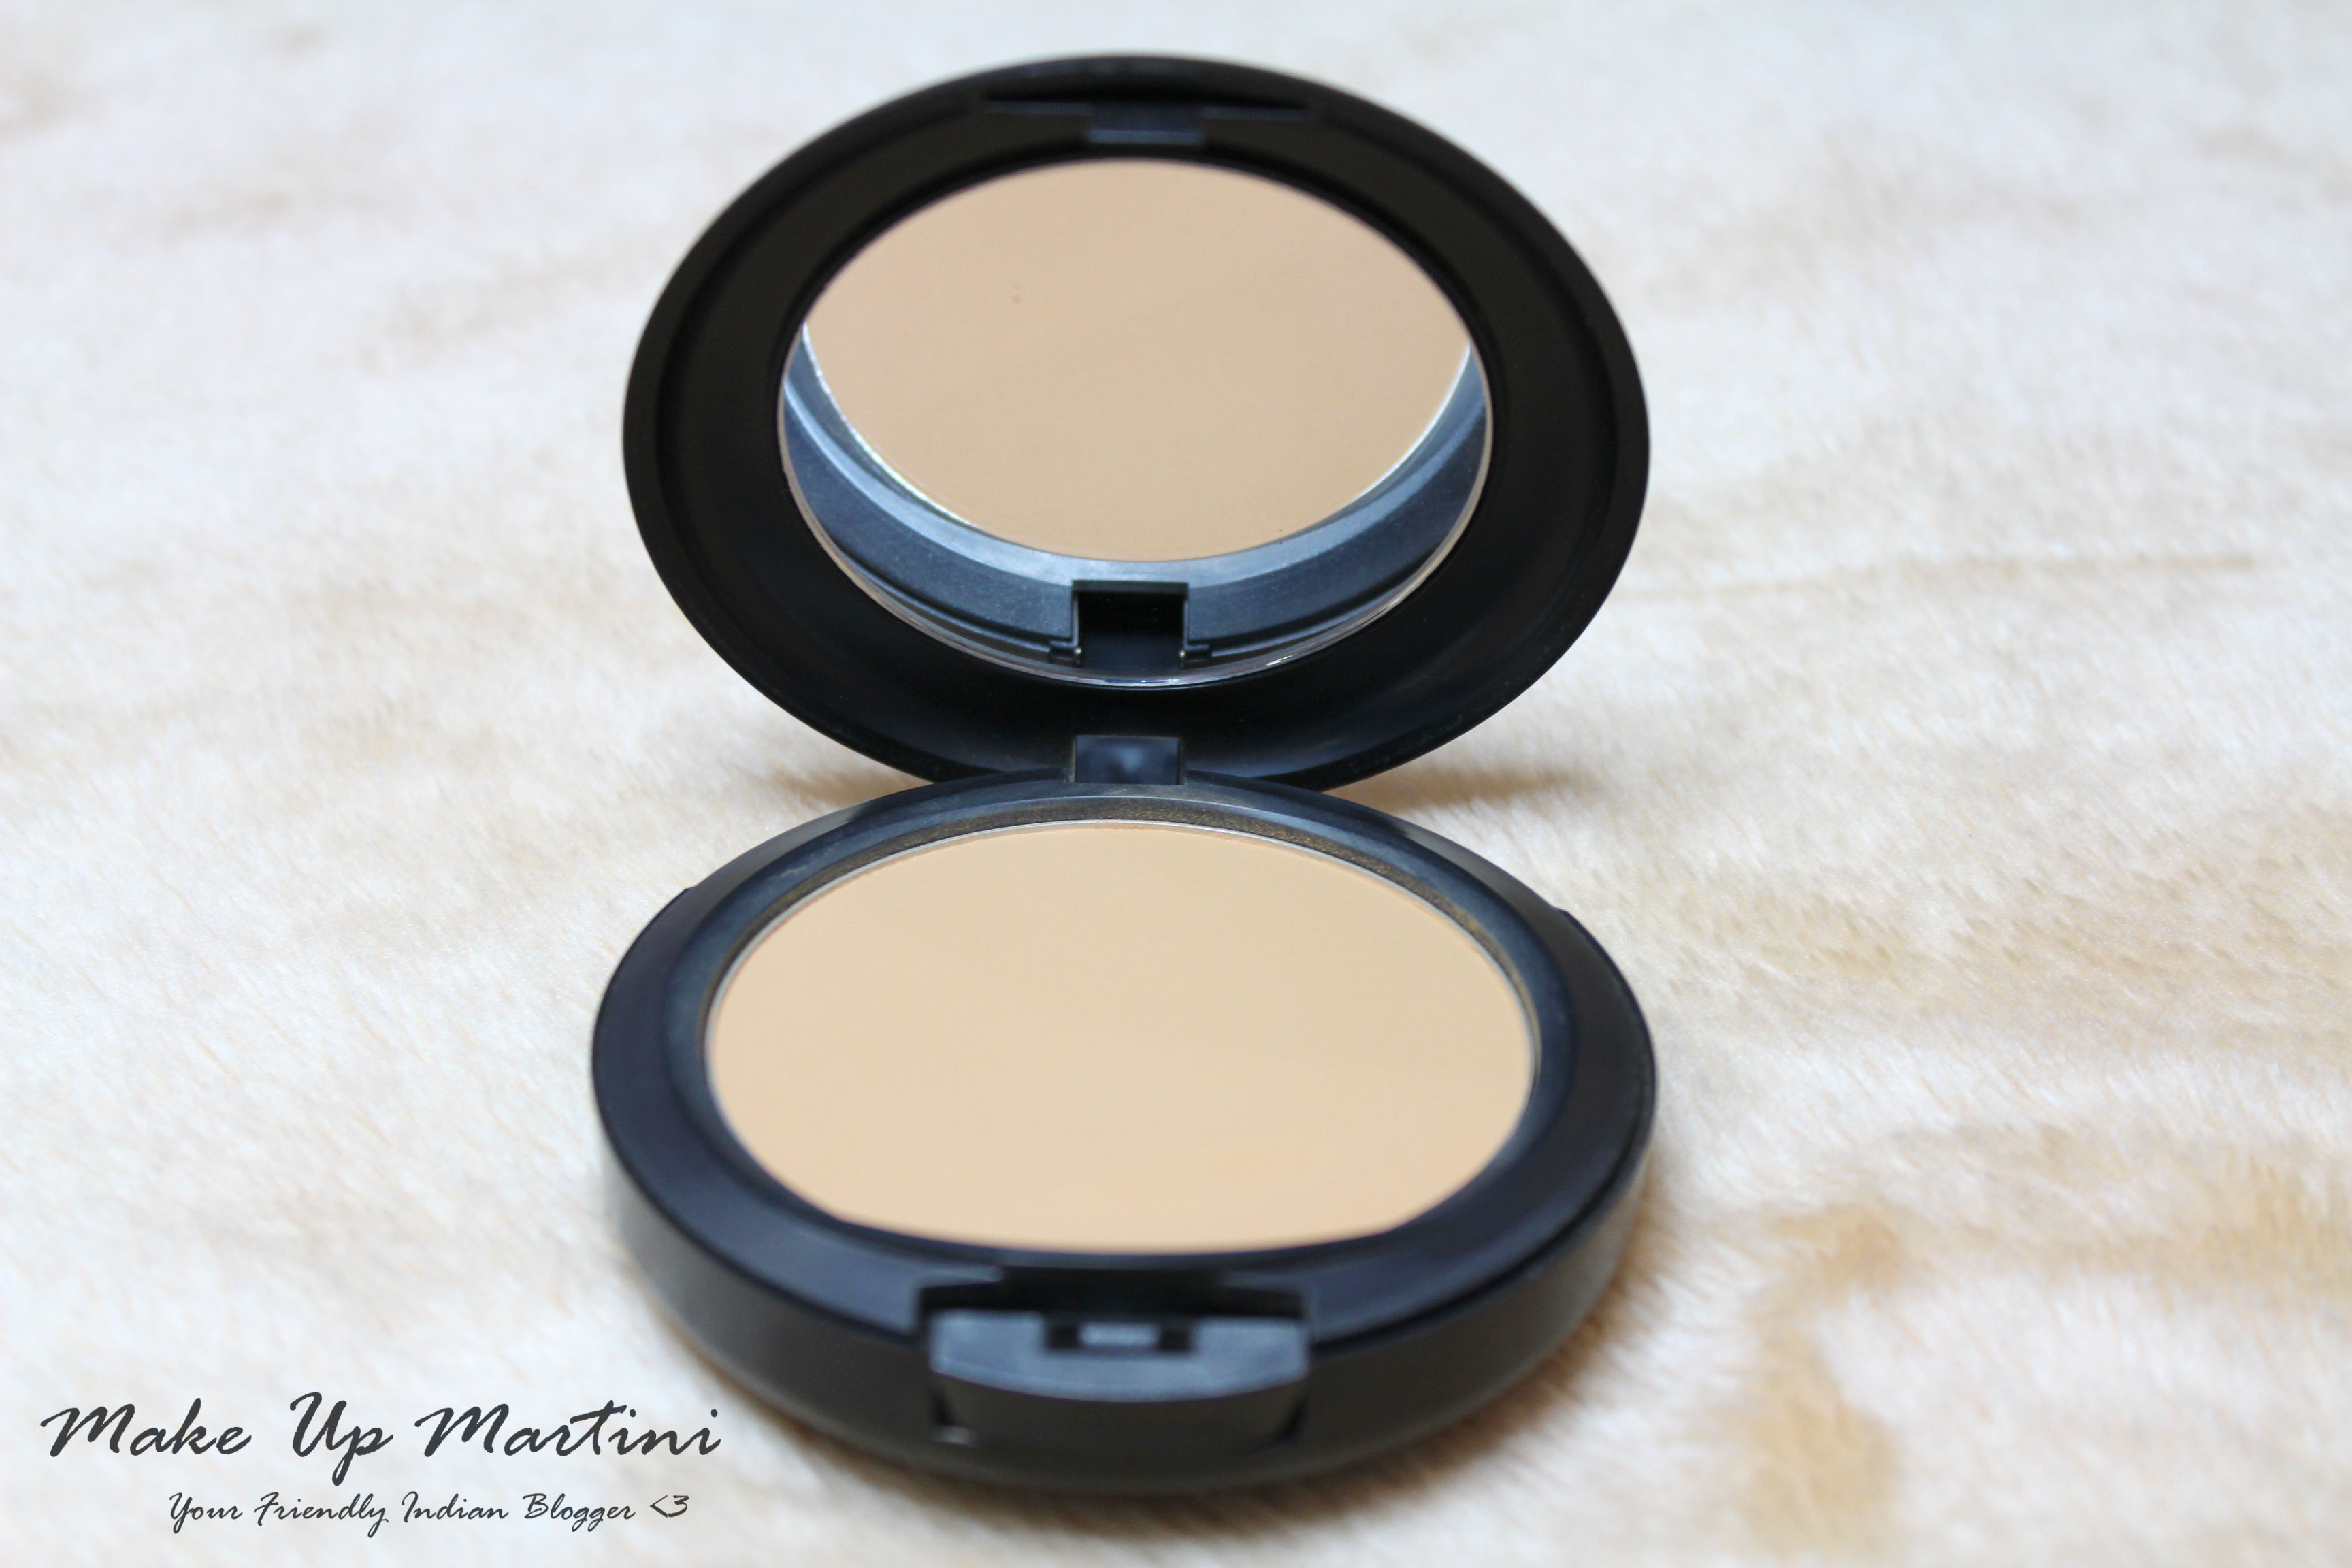 mac studio fix powder plus foundation review makeupmartini